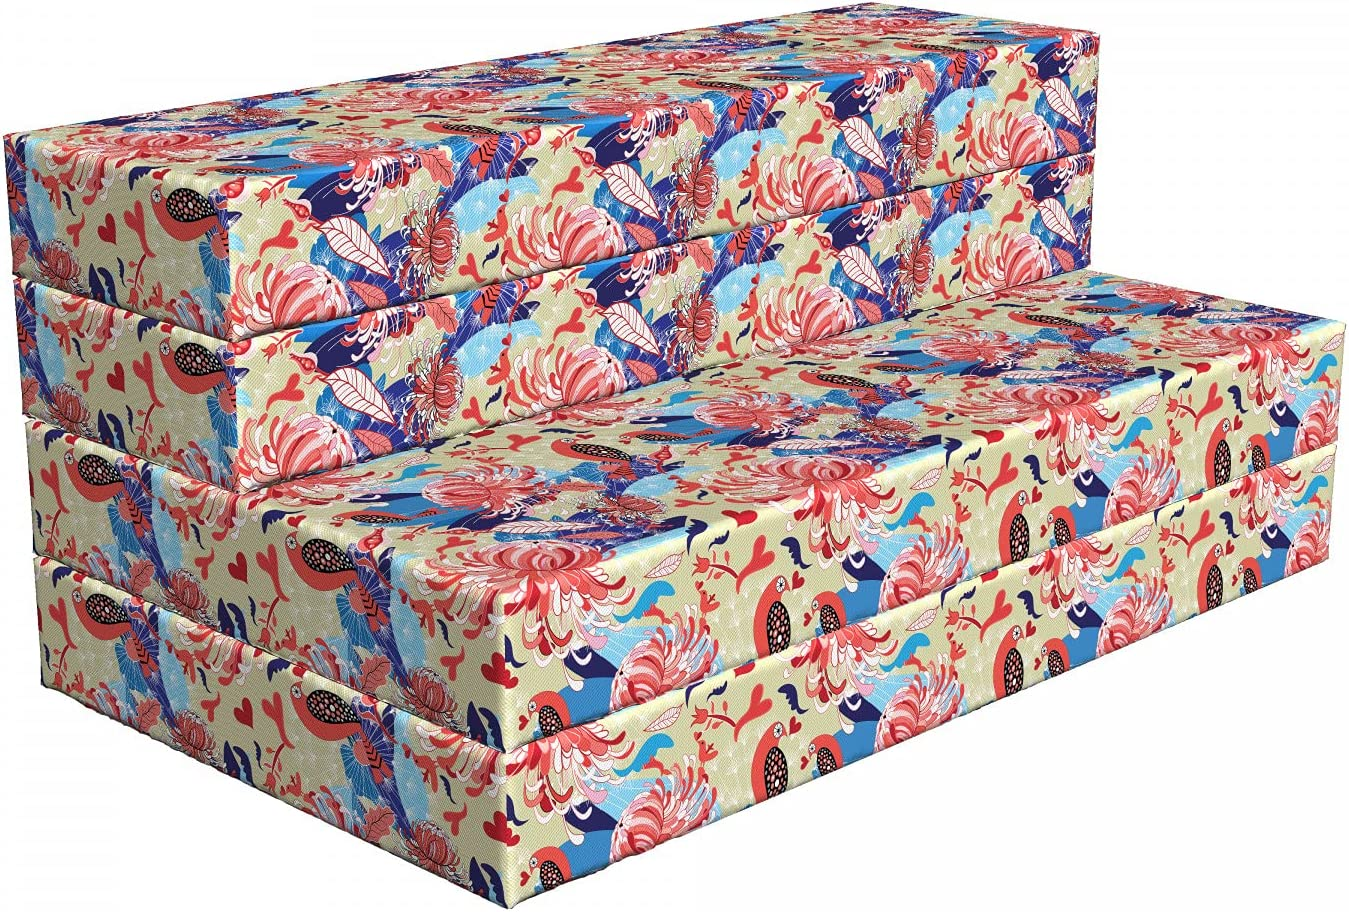 70% OFF Outlet free Ambesonne Birds Foldable Mattress Romantic x 78.7